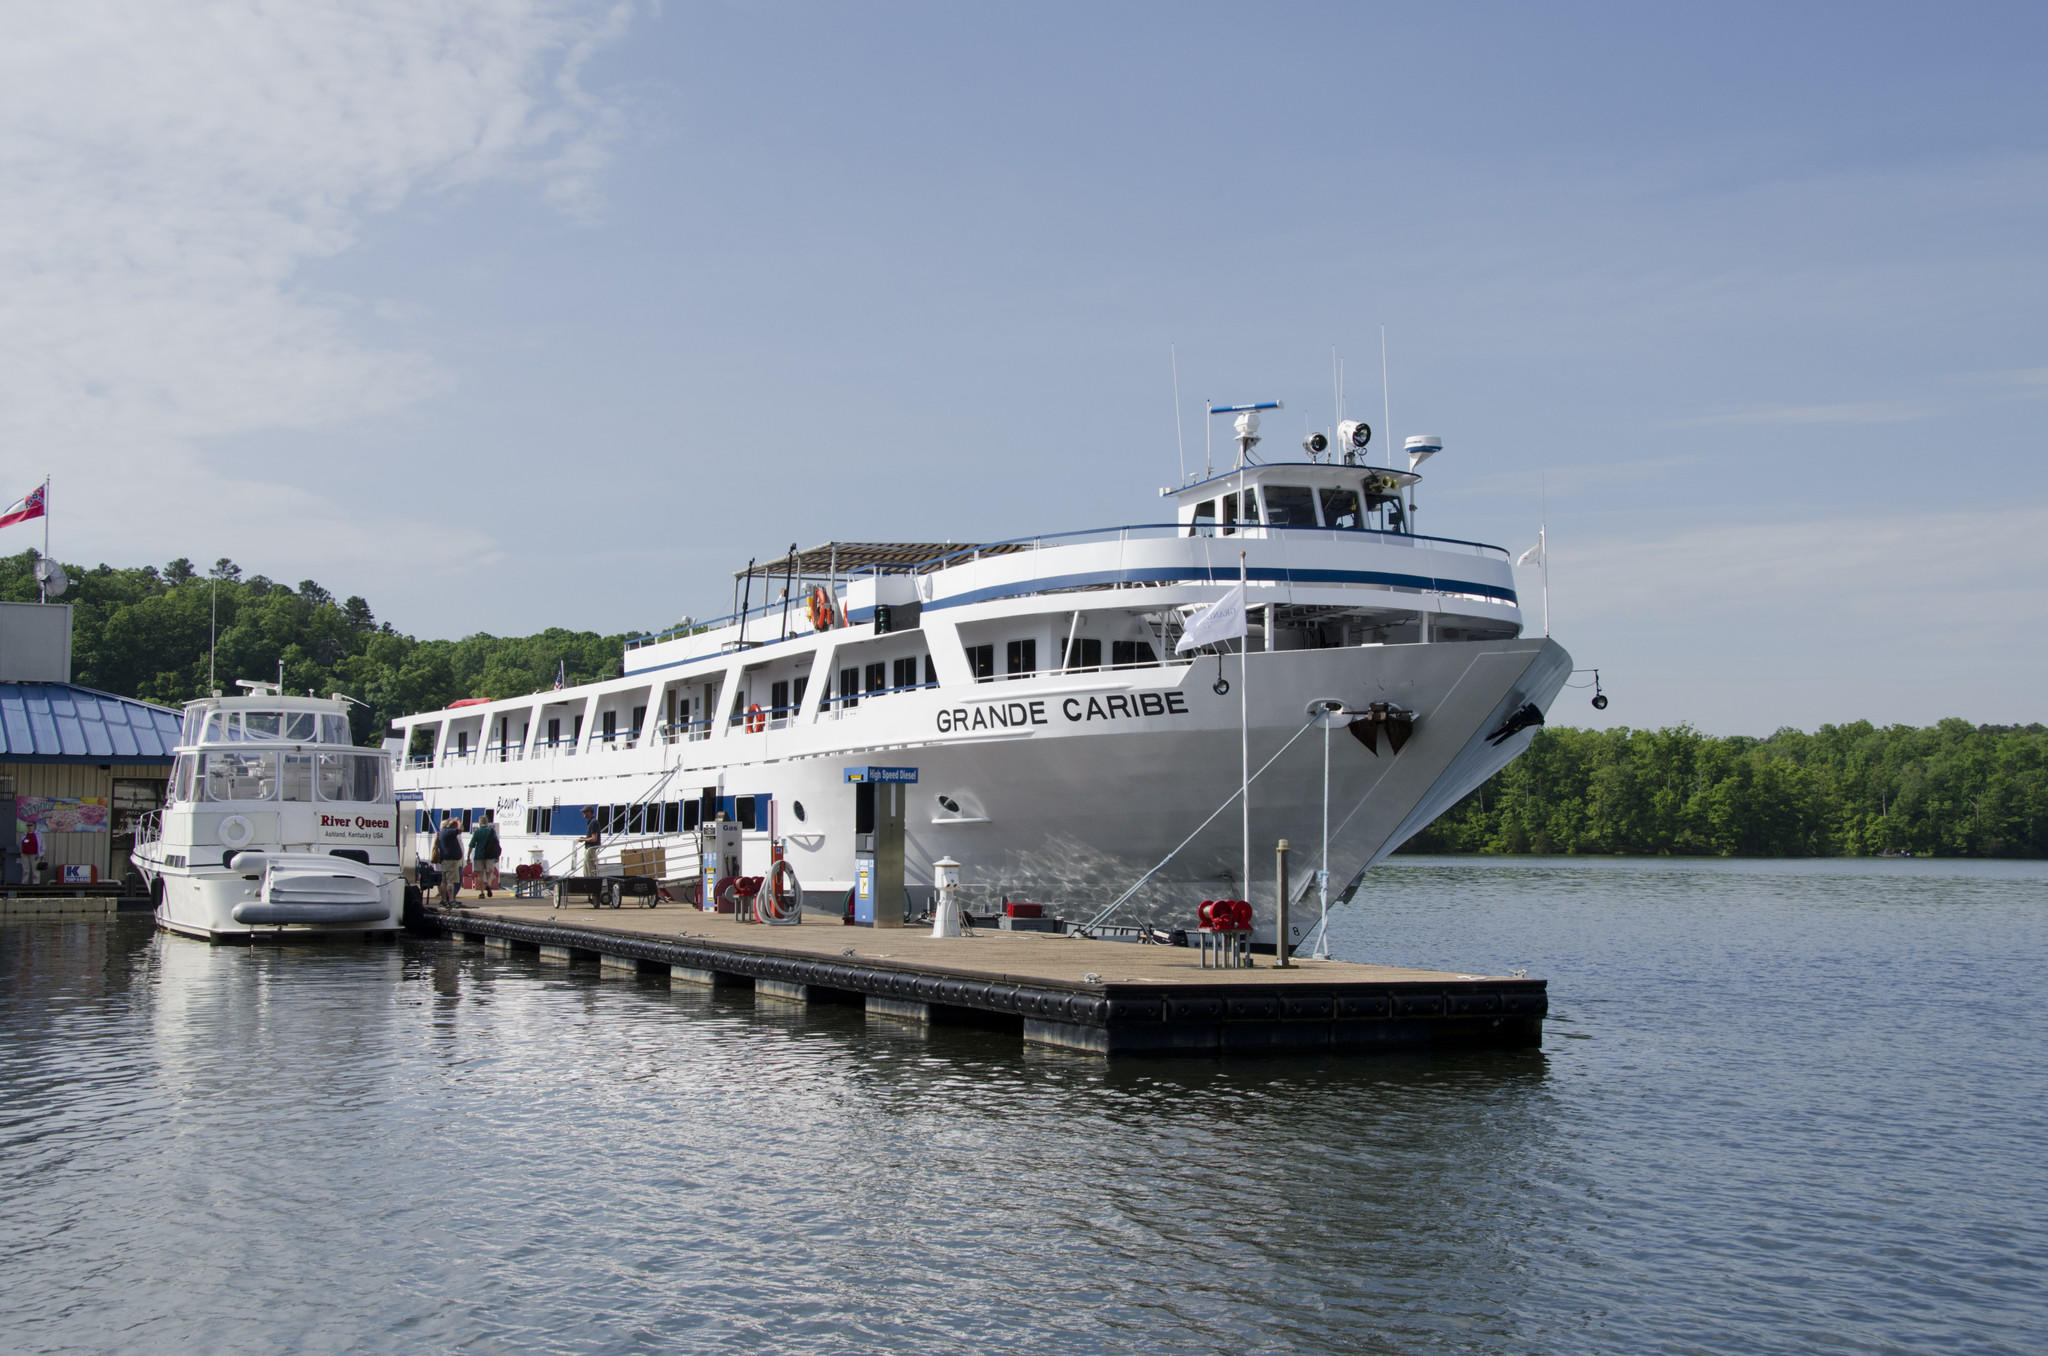 The Grande Caribe docked at Pickwick, Tenn.